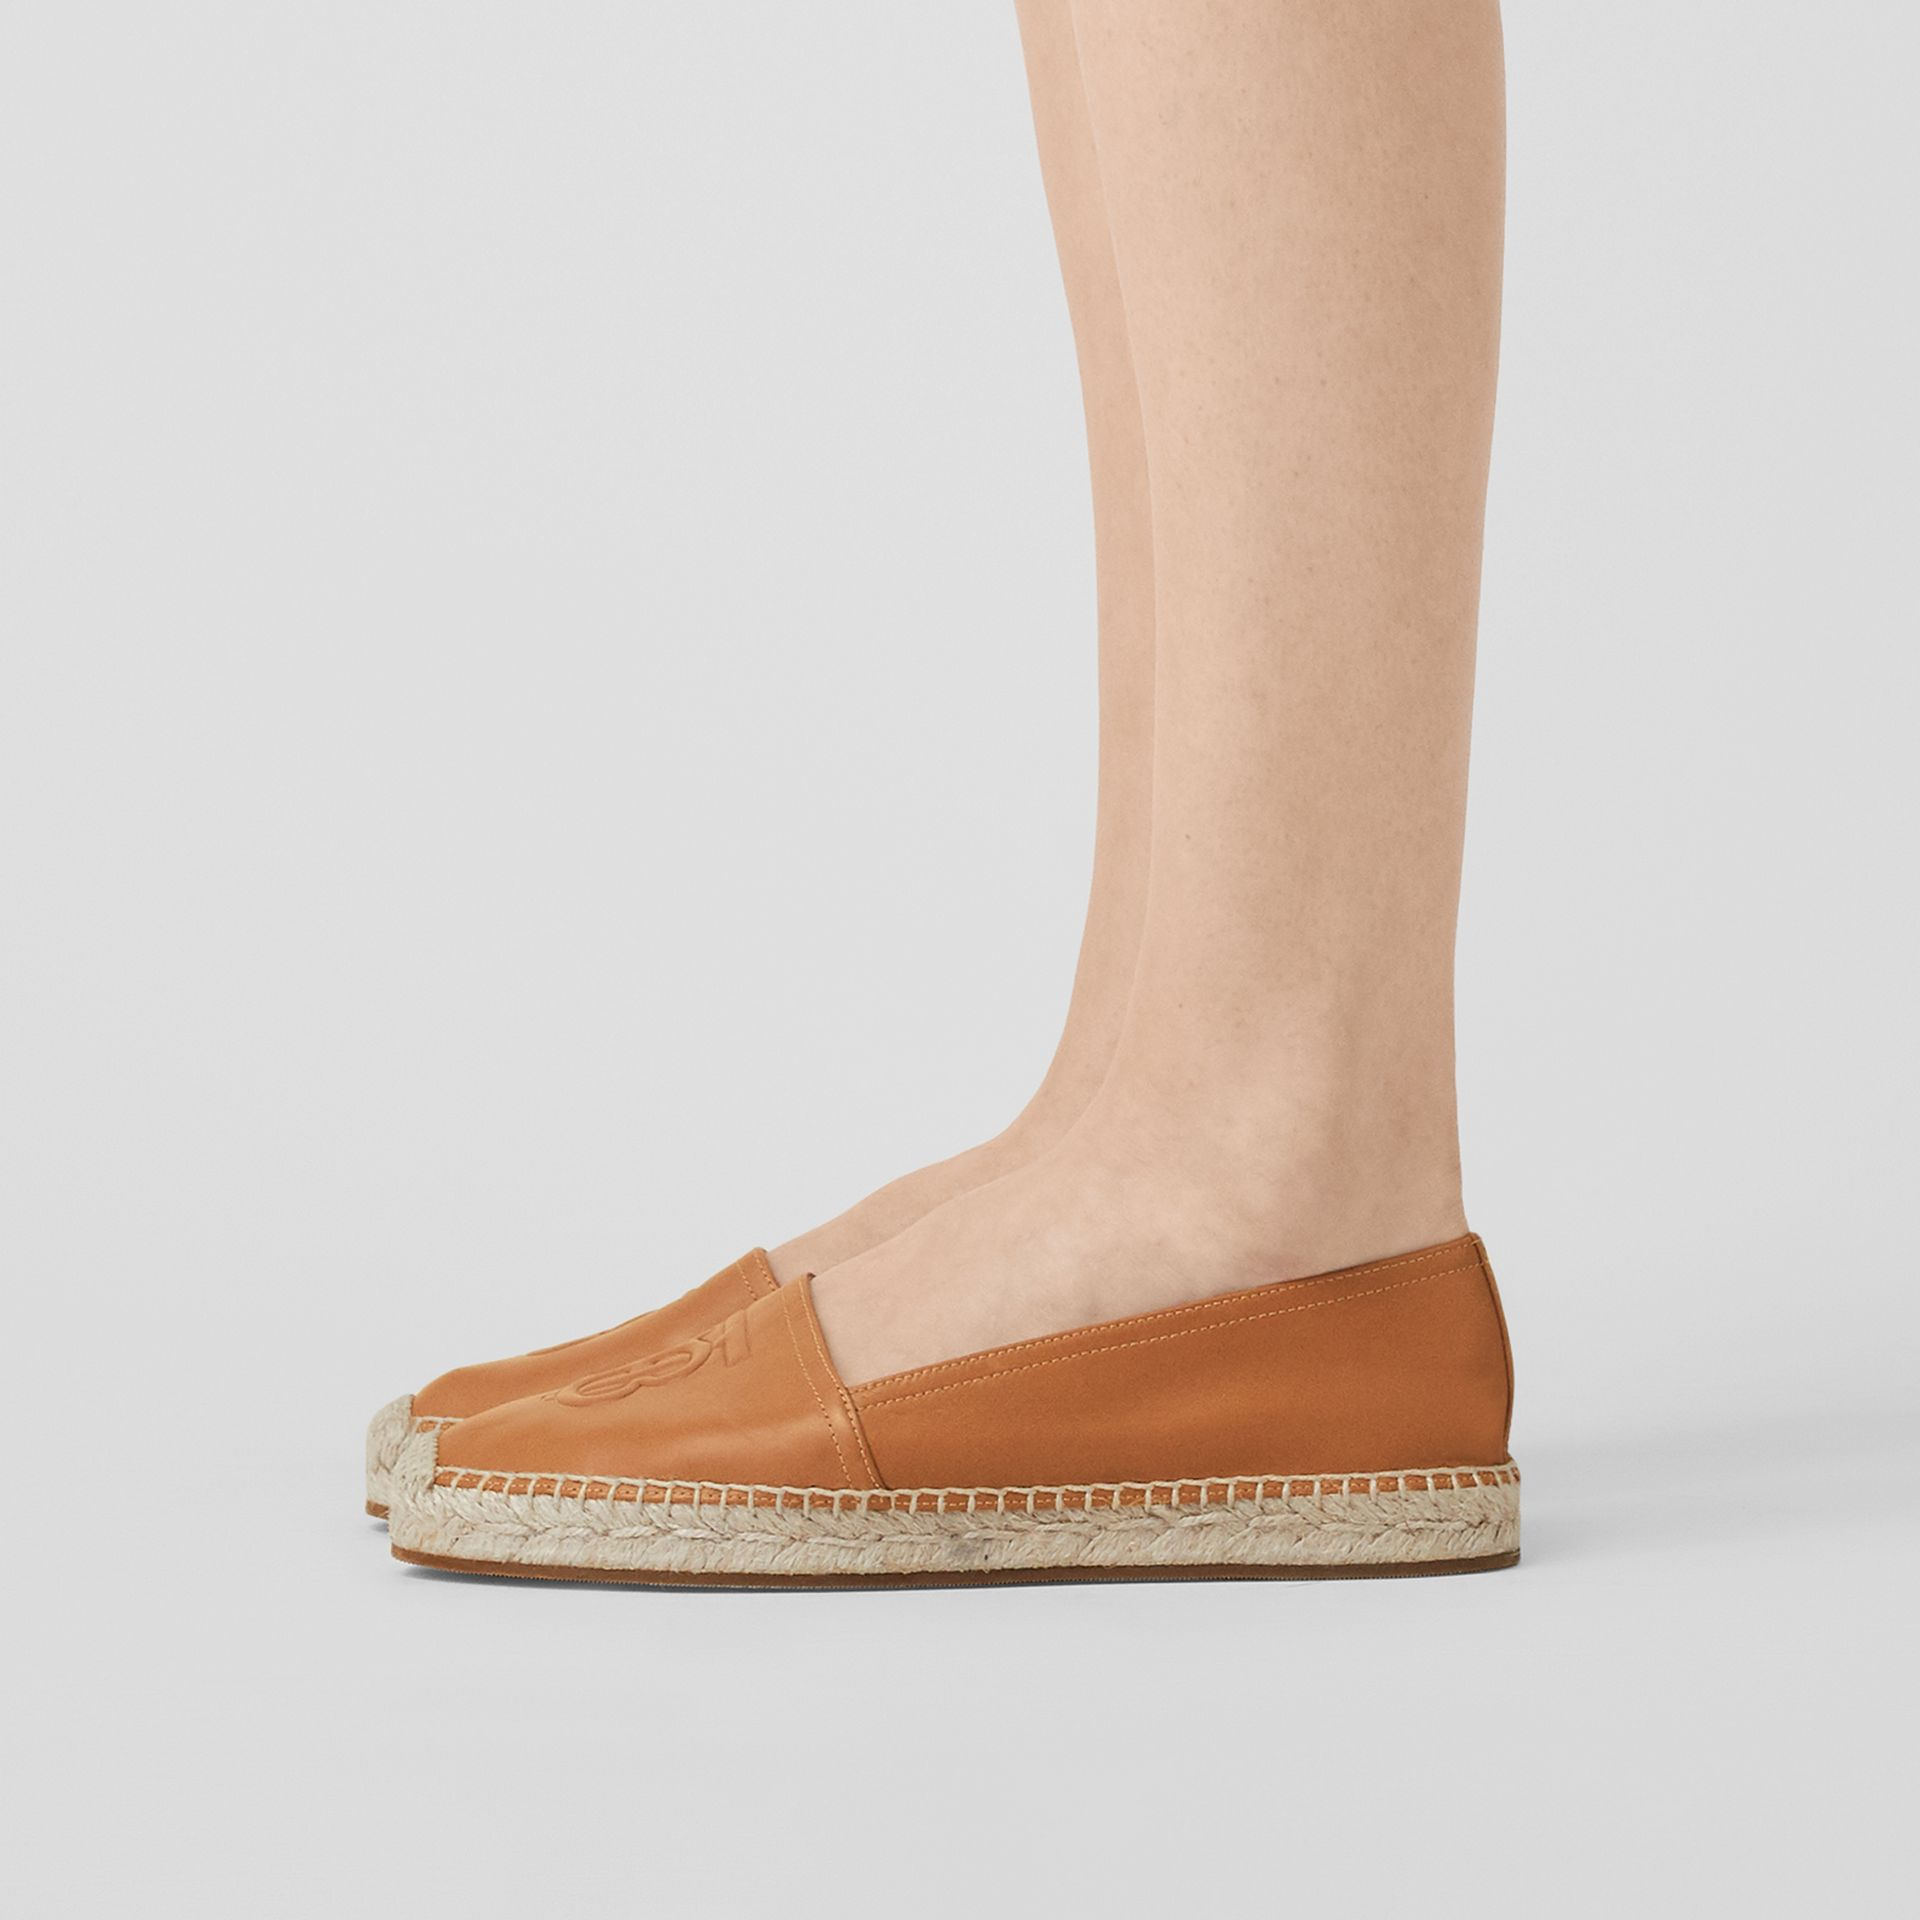 Monogram Motif Lambskin Espadrilles in Camel - Women | Burberry United Kingdom - gallery image 2